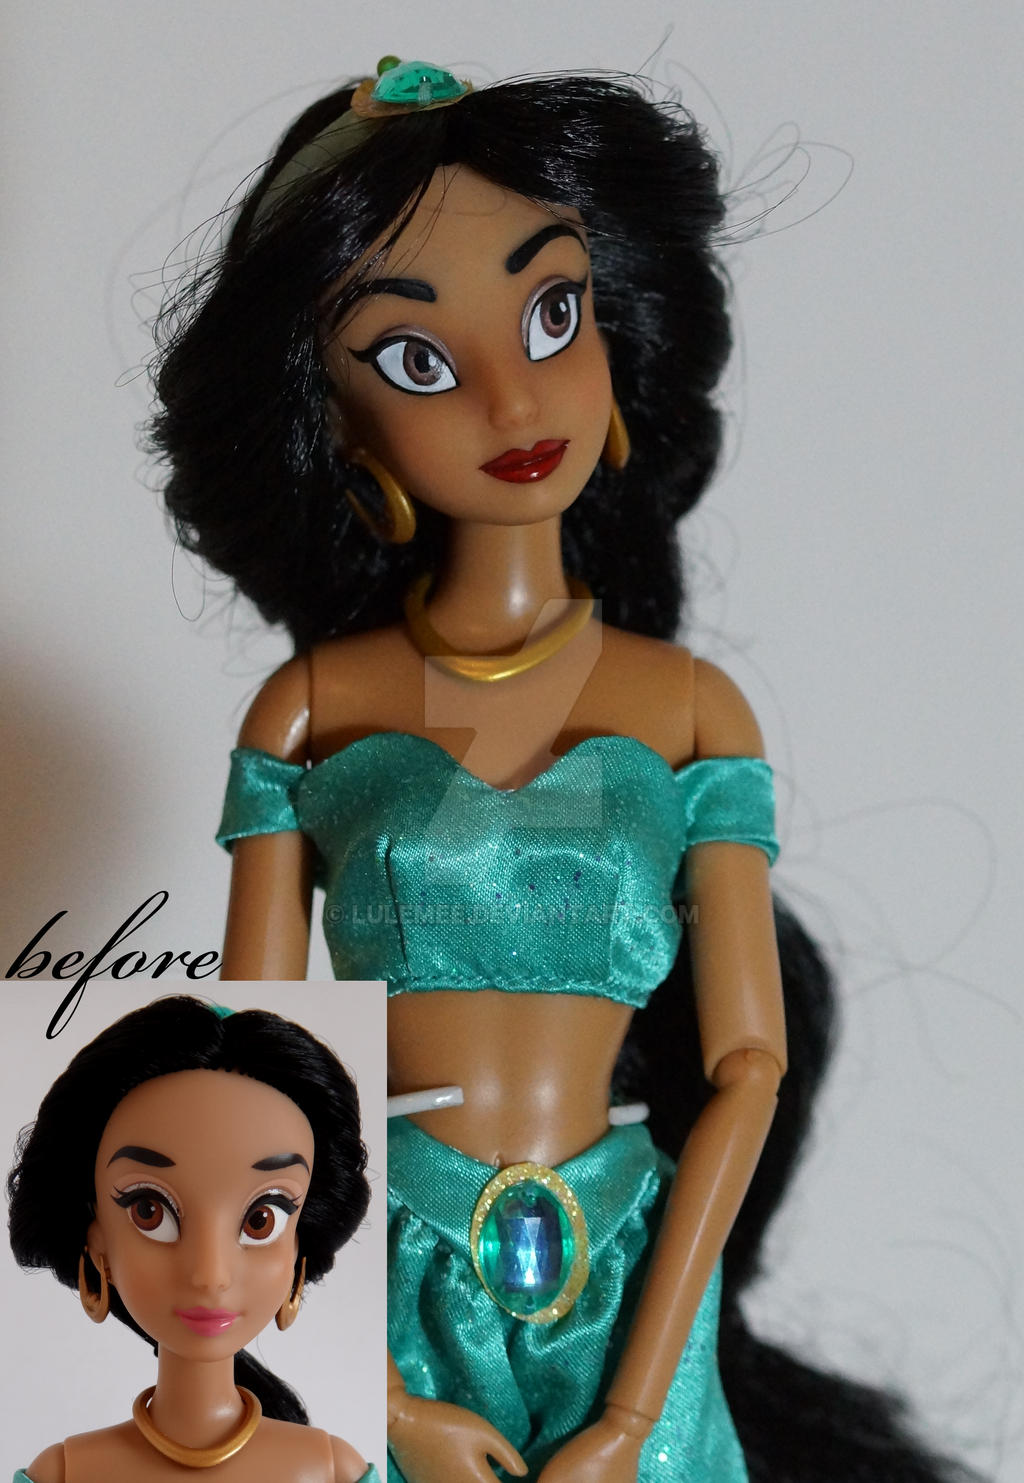 Disney Jasmine OOAK doll by lulemee